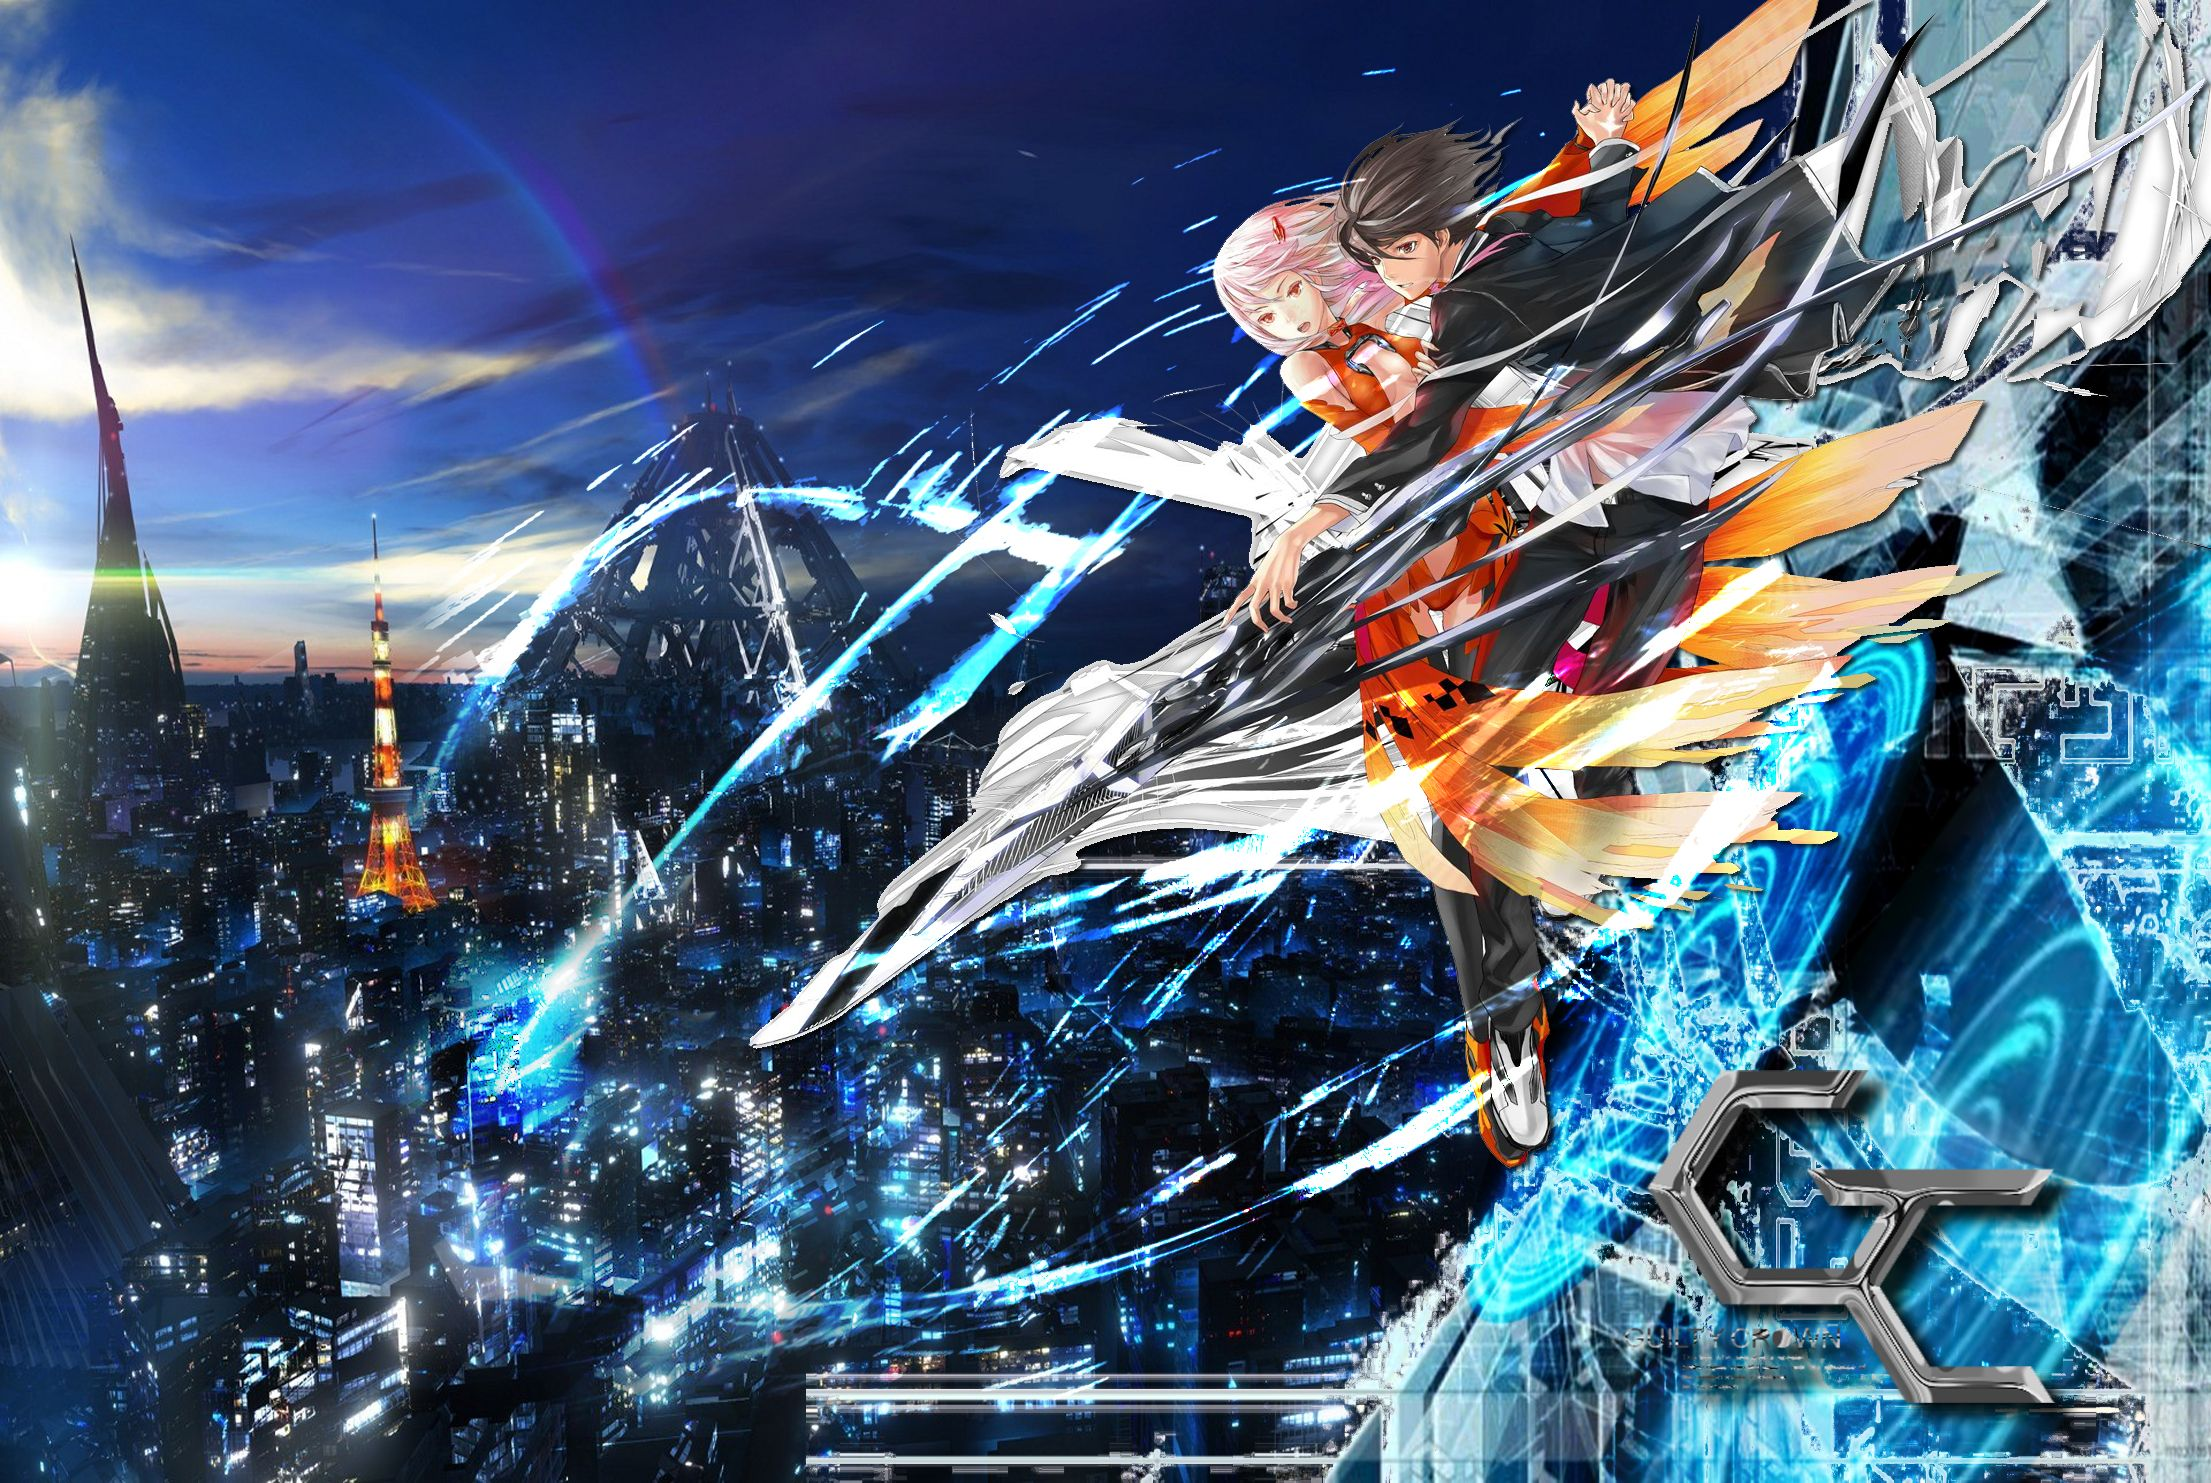 Anime Guilty Crown Really Good Anime In My Opinion Genre